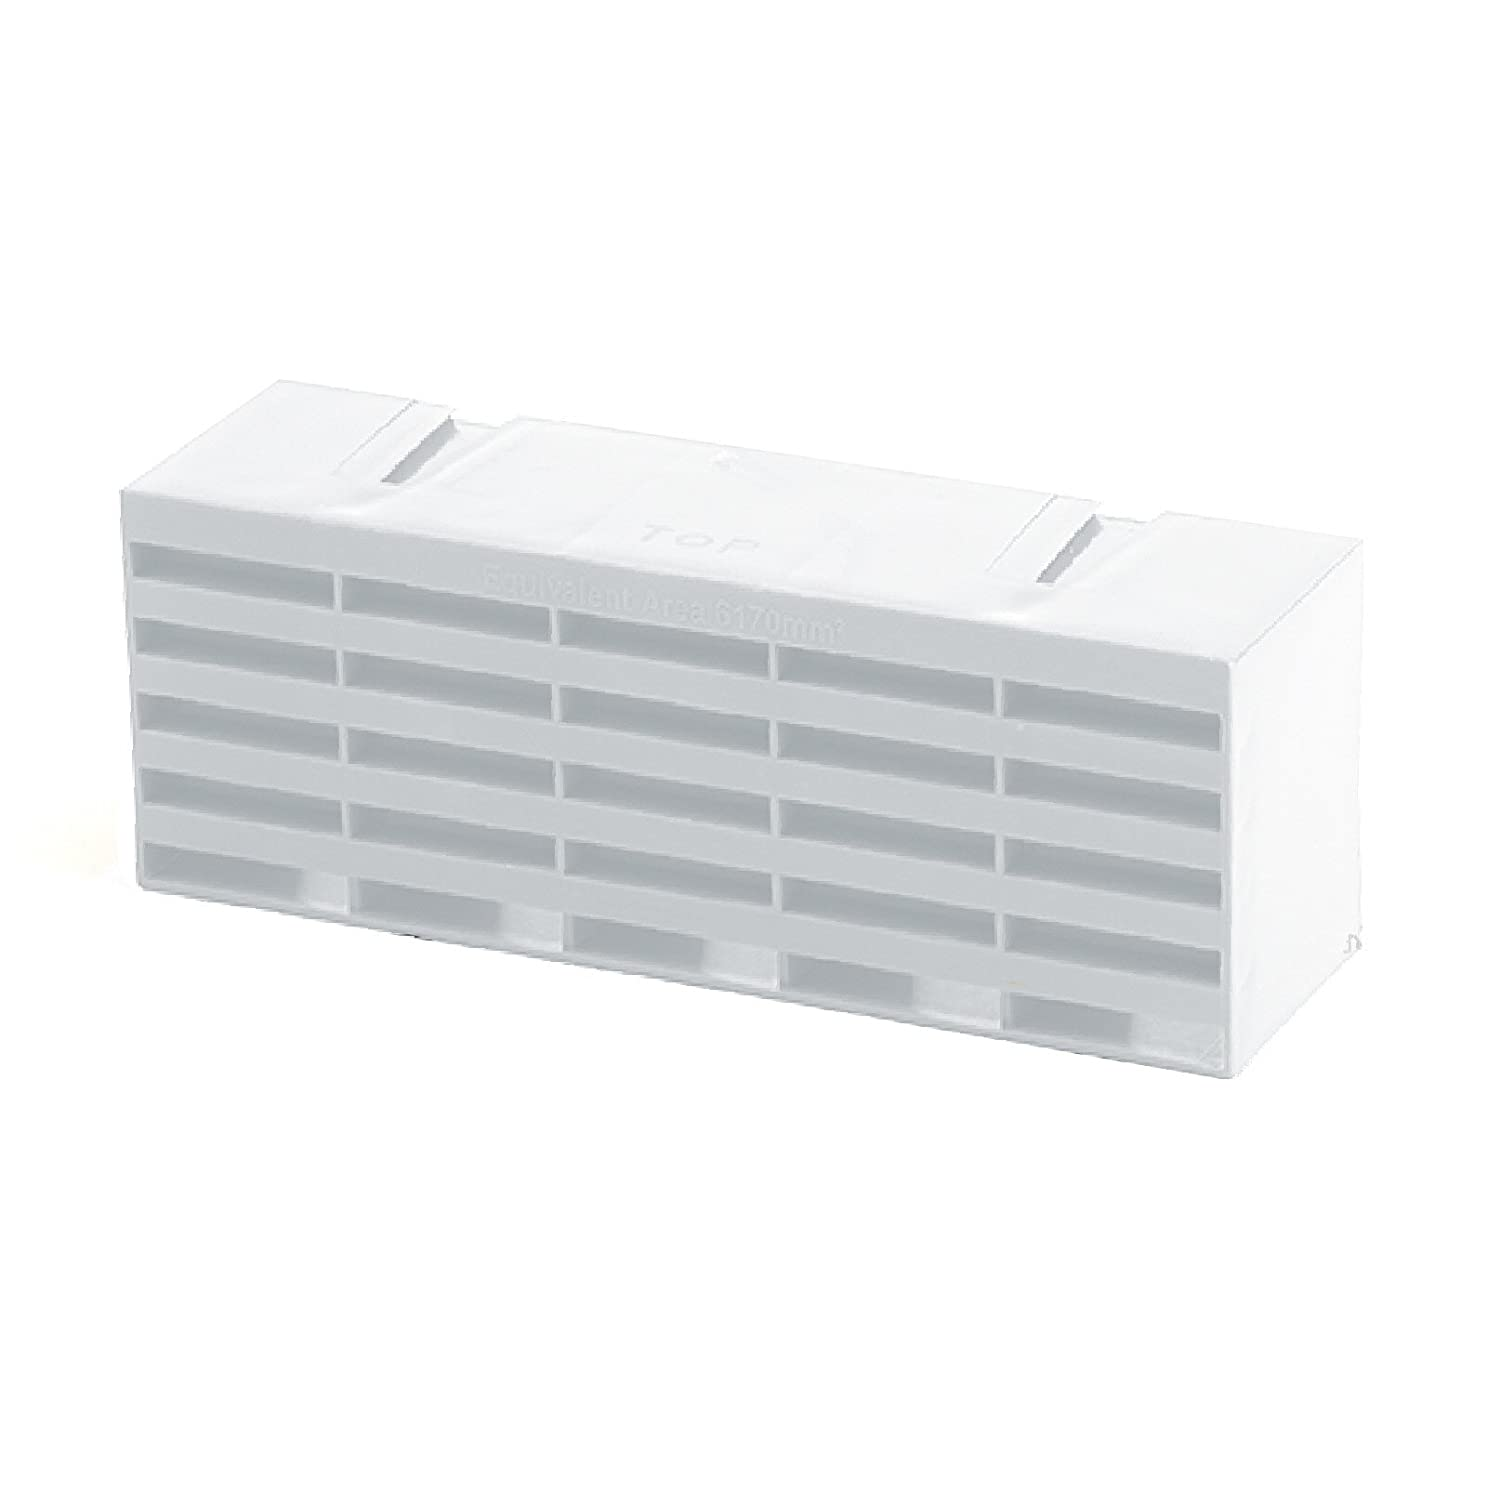 10 x White Air Bricks Vent 9'x 3' Airbrick Grille Air Flow Brick Ventilation Timloc